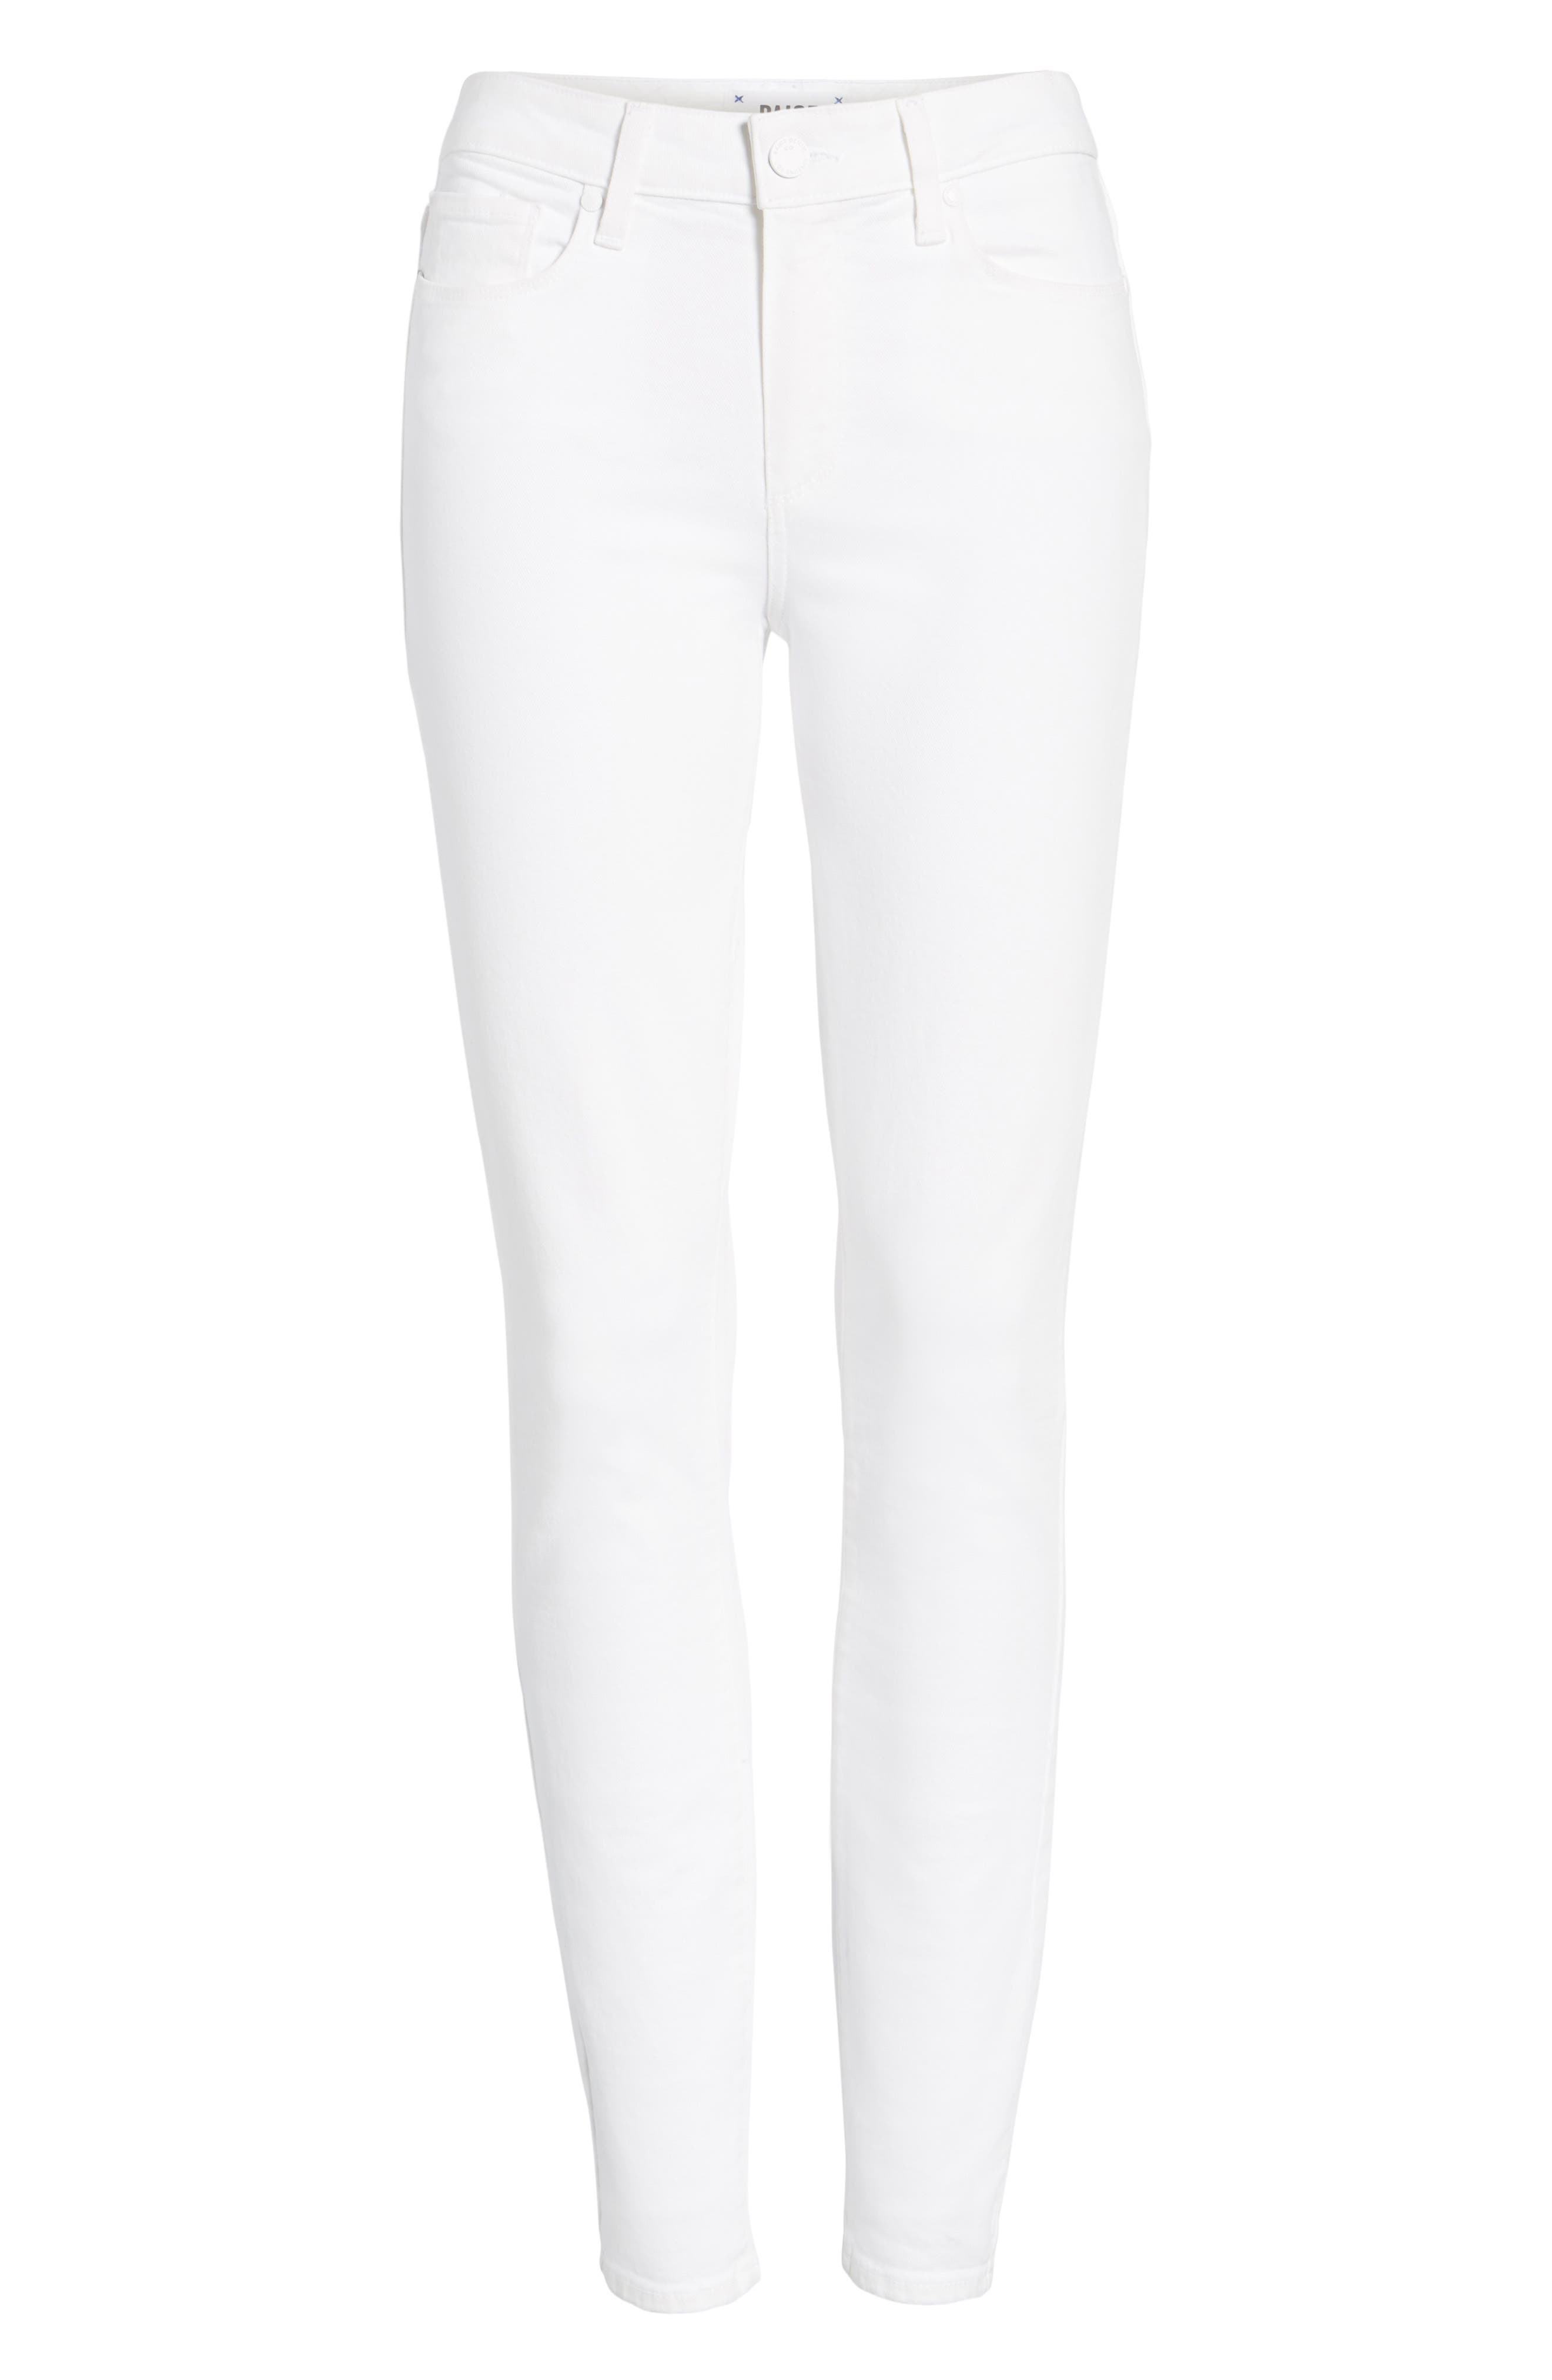 Hoxton High Waist Ankle Skinny Jeans,                             Alternate thumbnail 3, color,                             101